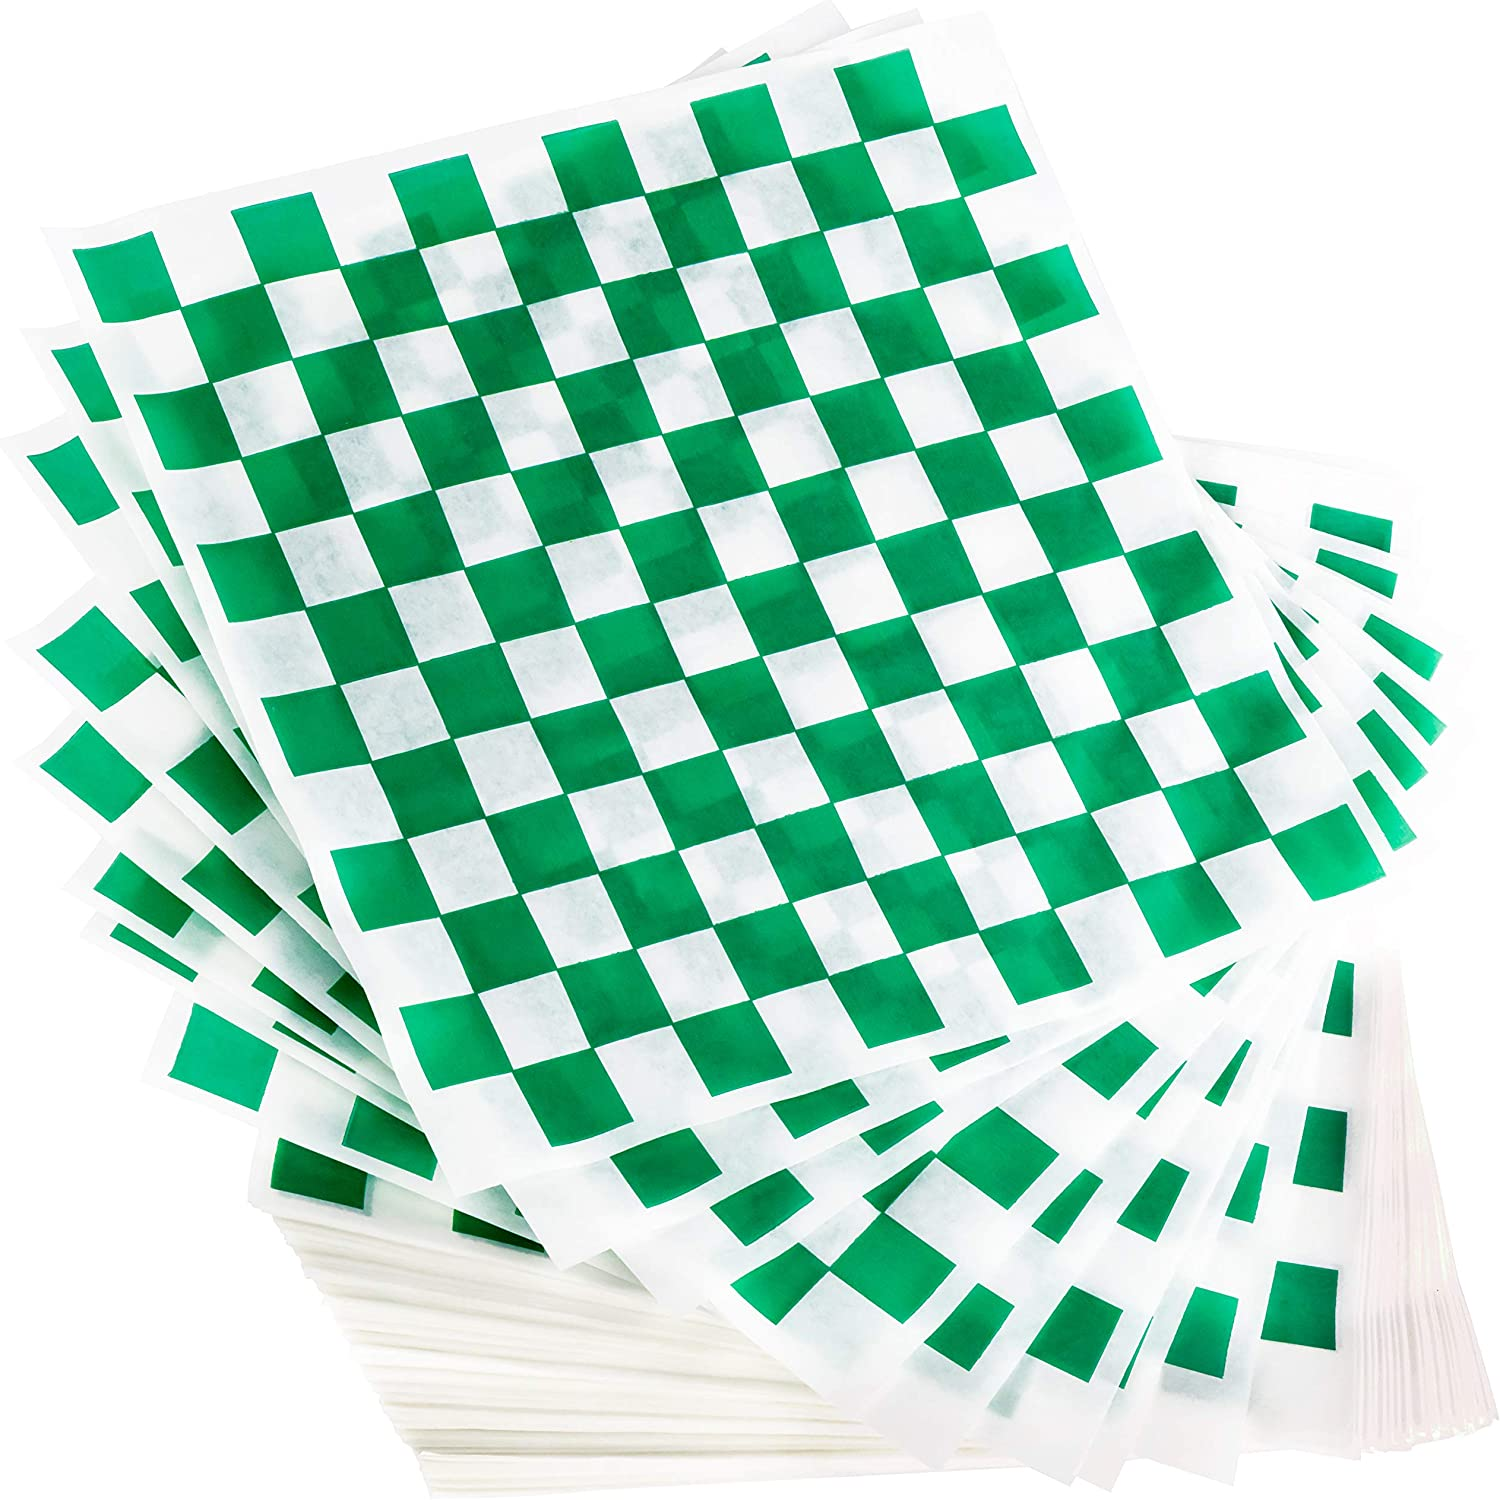 Avant Grub Deli Paper 300 Sheets. Turn Your Backyard Cookout Party into a Special Event with Green & White Checkered Food Wrapping Papers. Grease-Resistant 12x12 Sandwich Wrap Prevents Food Stains!